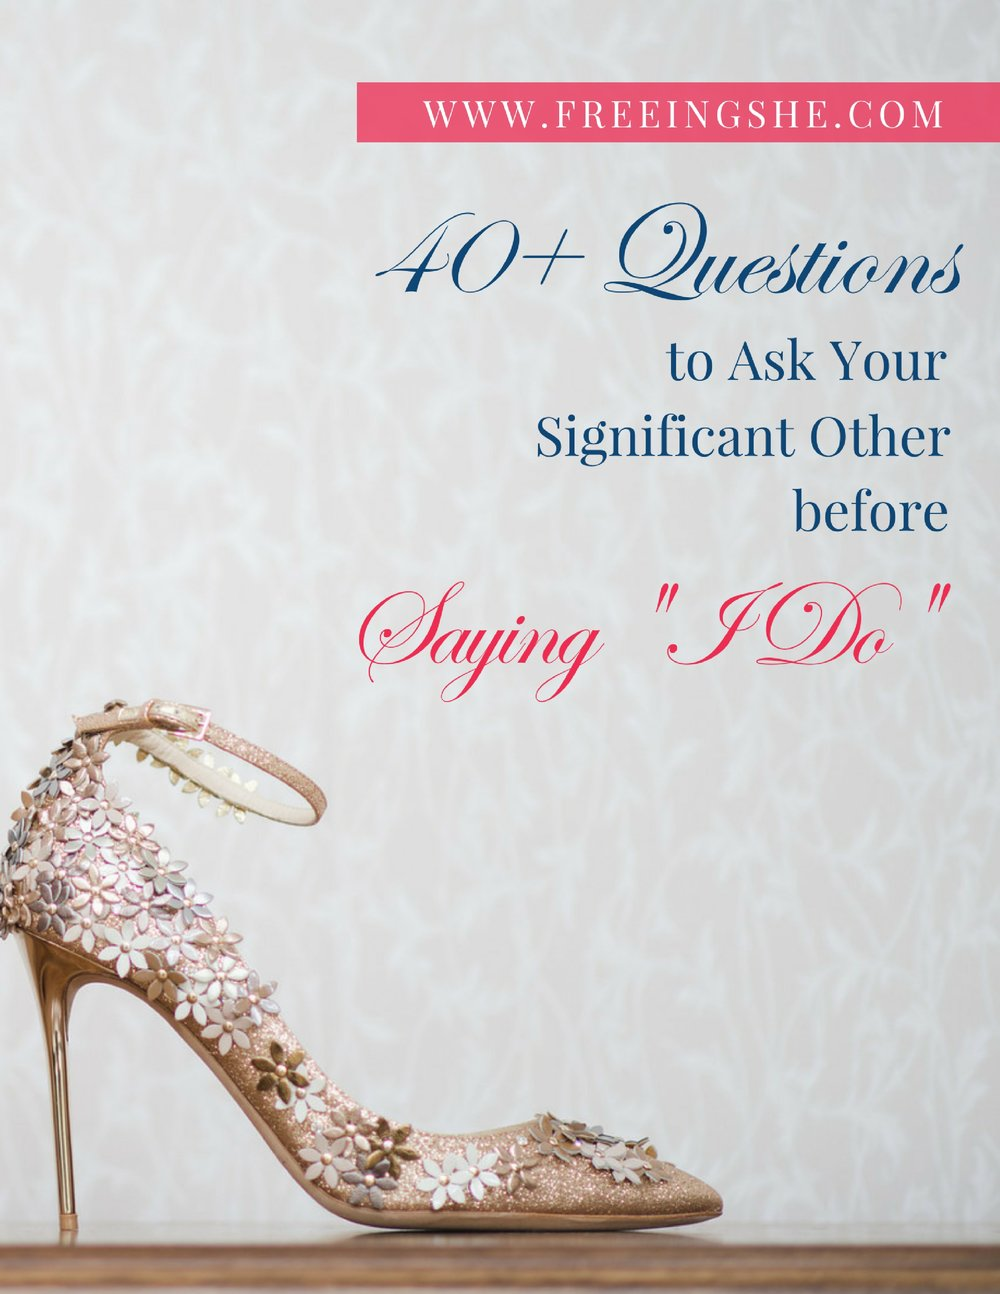 40-Questions-Ask-Before-Marriage.jpg